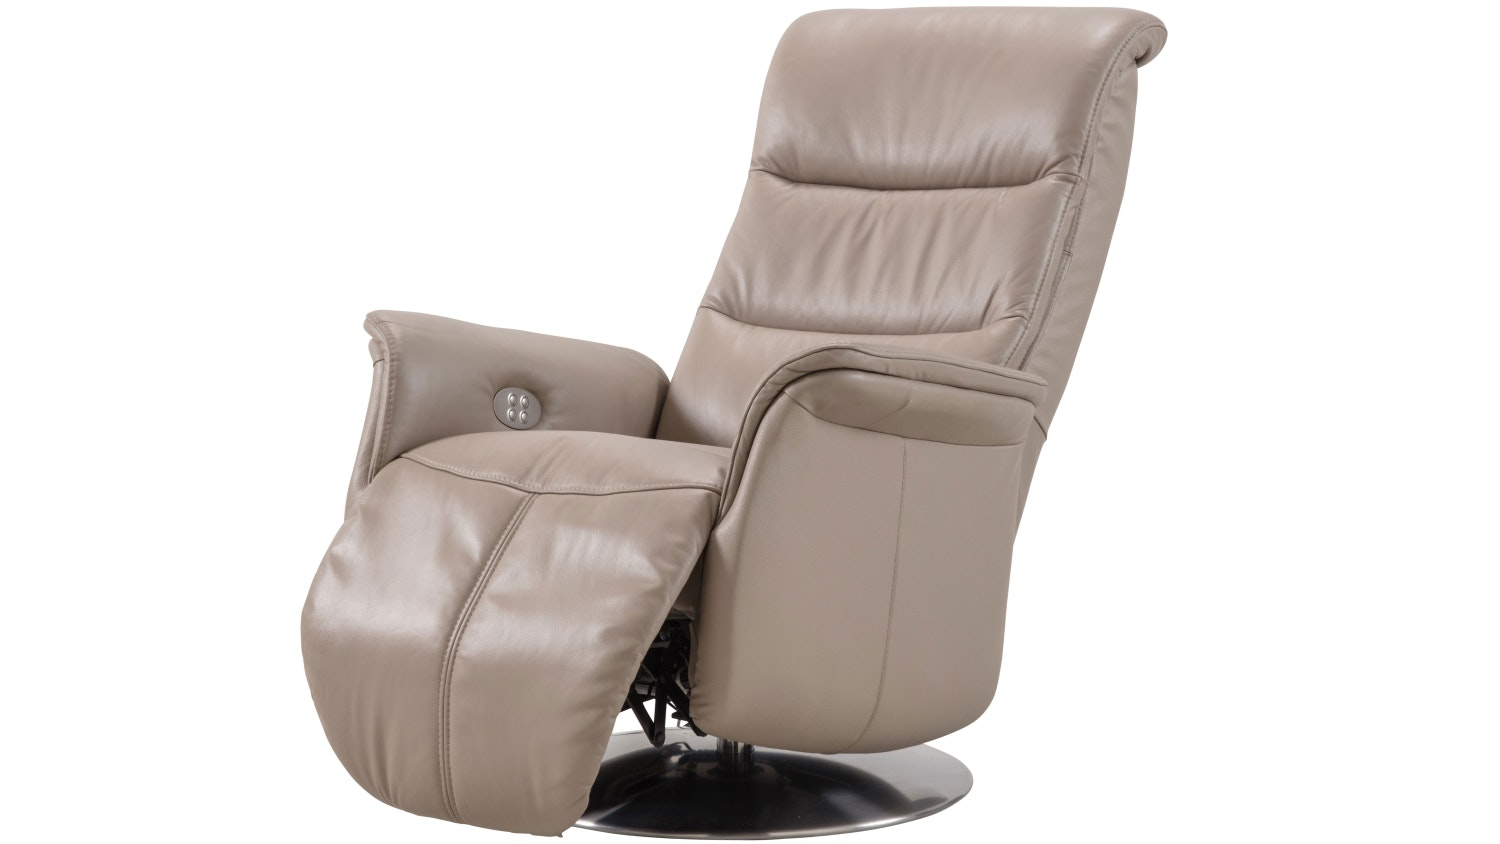 sc 1 st  Domayne & Occasional Chairs - Armchair Armchairs Recliners Recliner | Domayne islam-shia.org